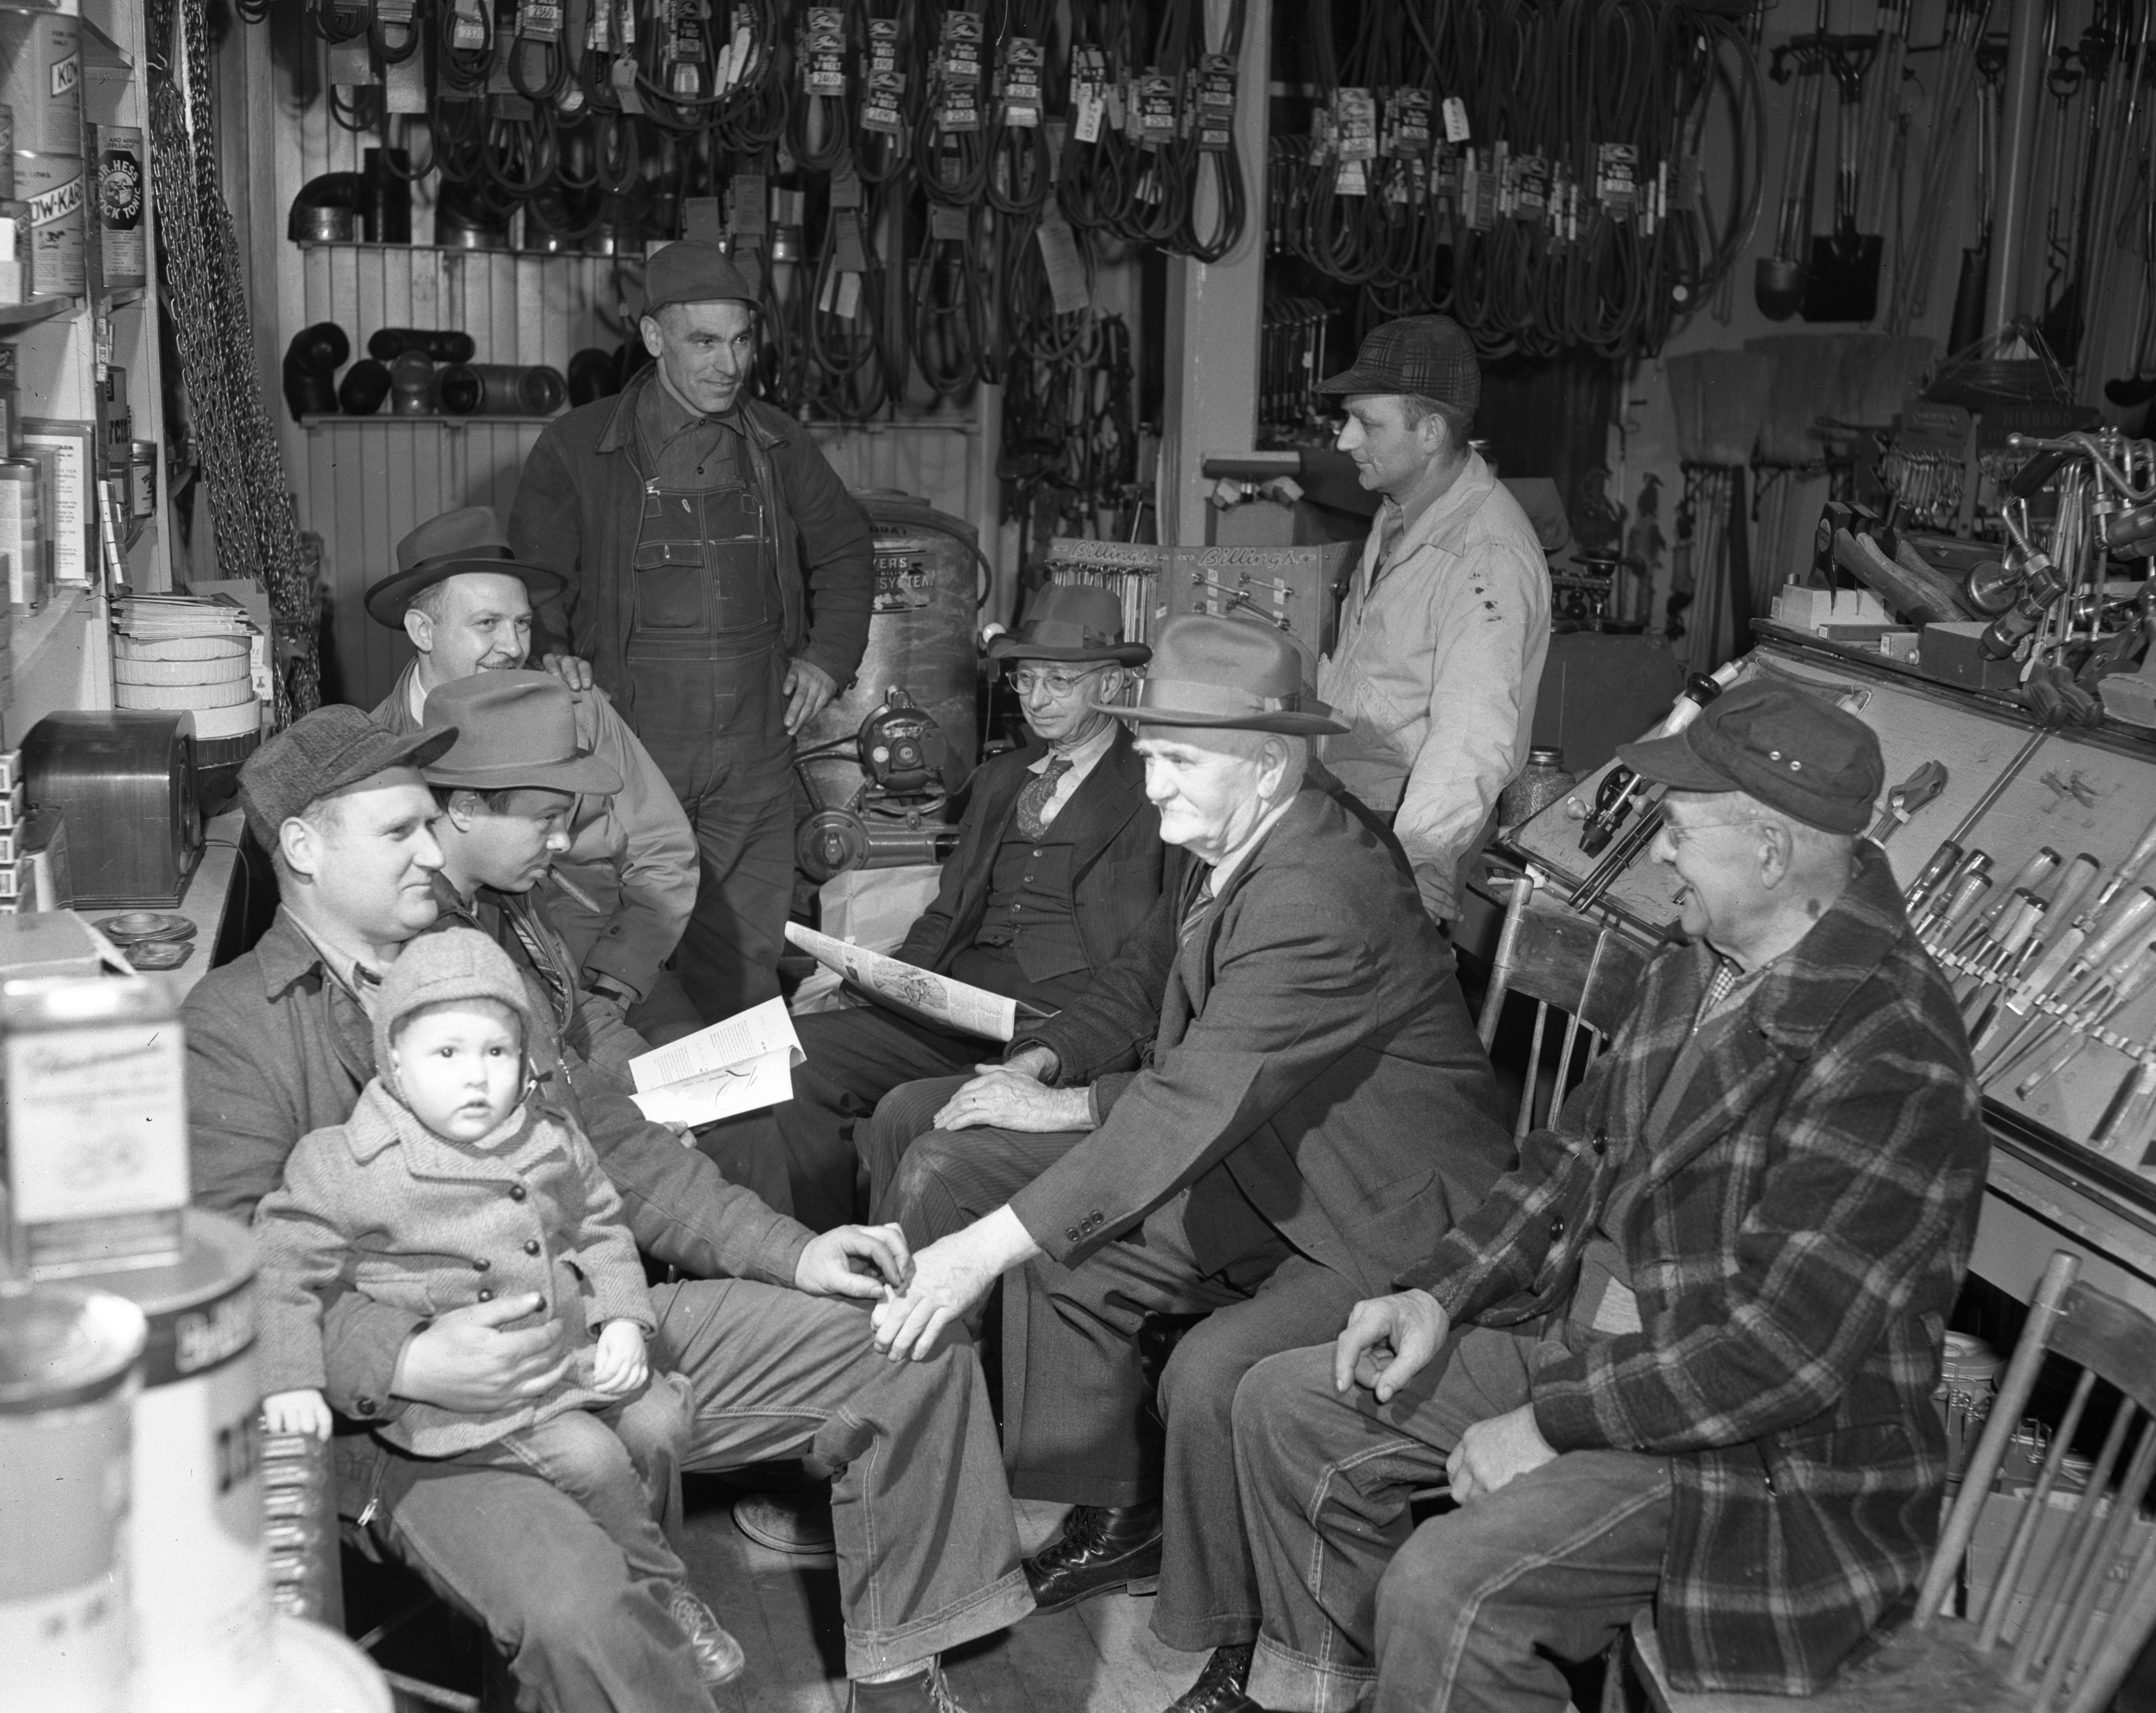 Farmers around the stove at Hertler Brother's Farm Store, March 1949 image